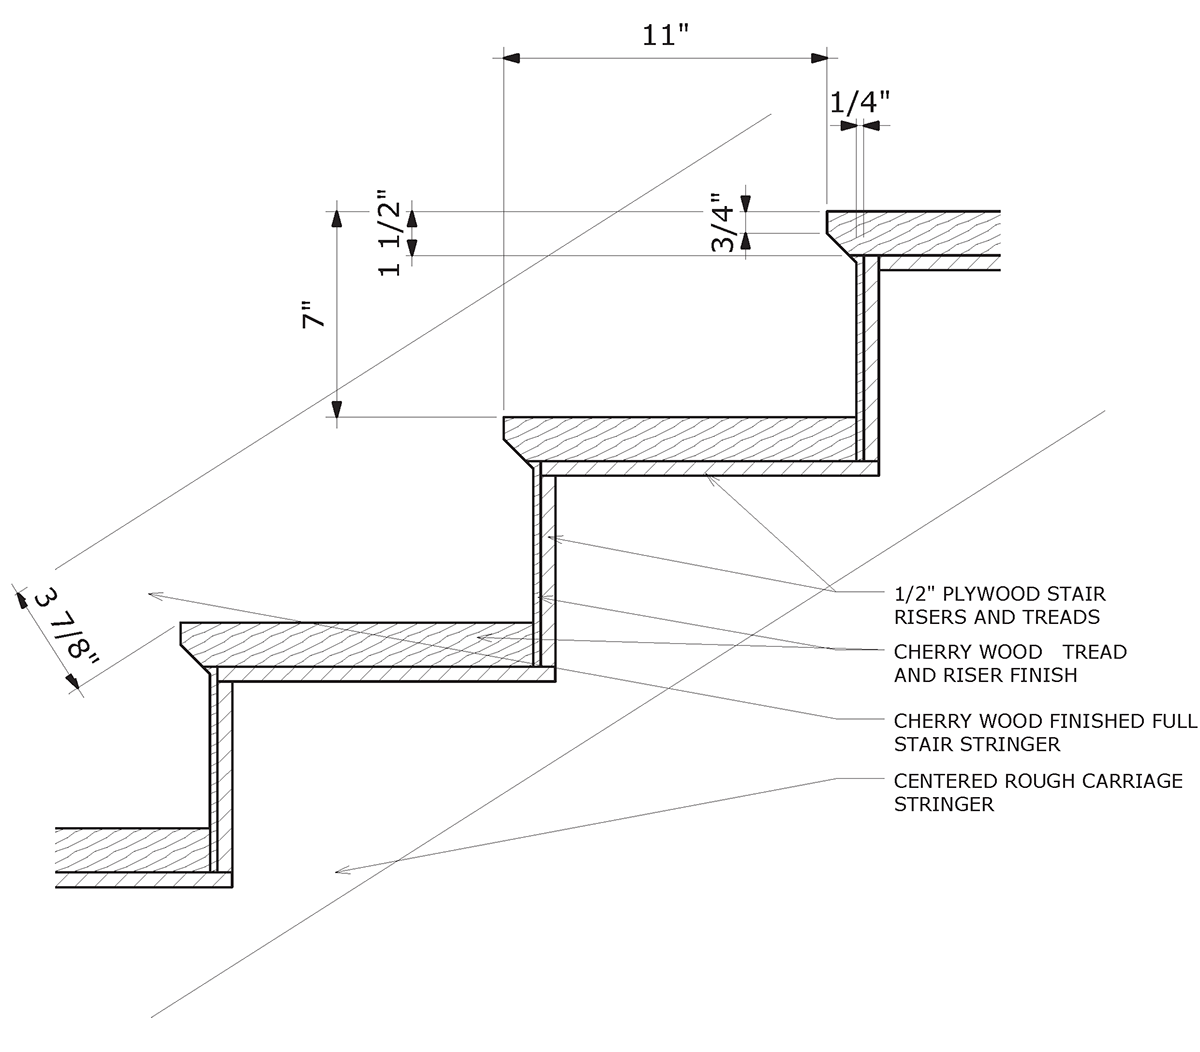 What Is The Maximum Riser Height For Stairs Leading To An Open Sun Deck Located Above A Carport For A Single Family Residence In The City Of Los Angeles By Skwerl